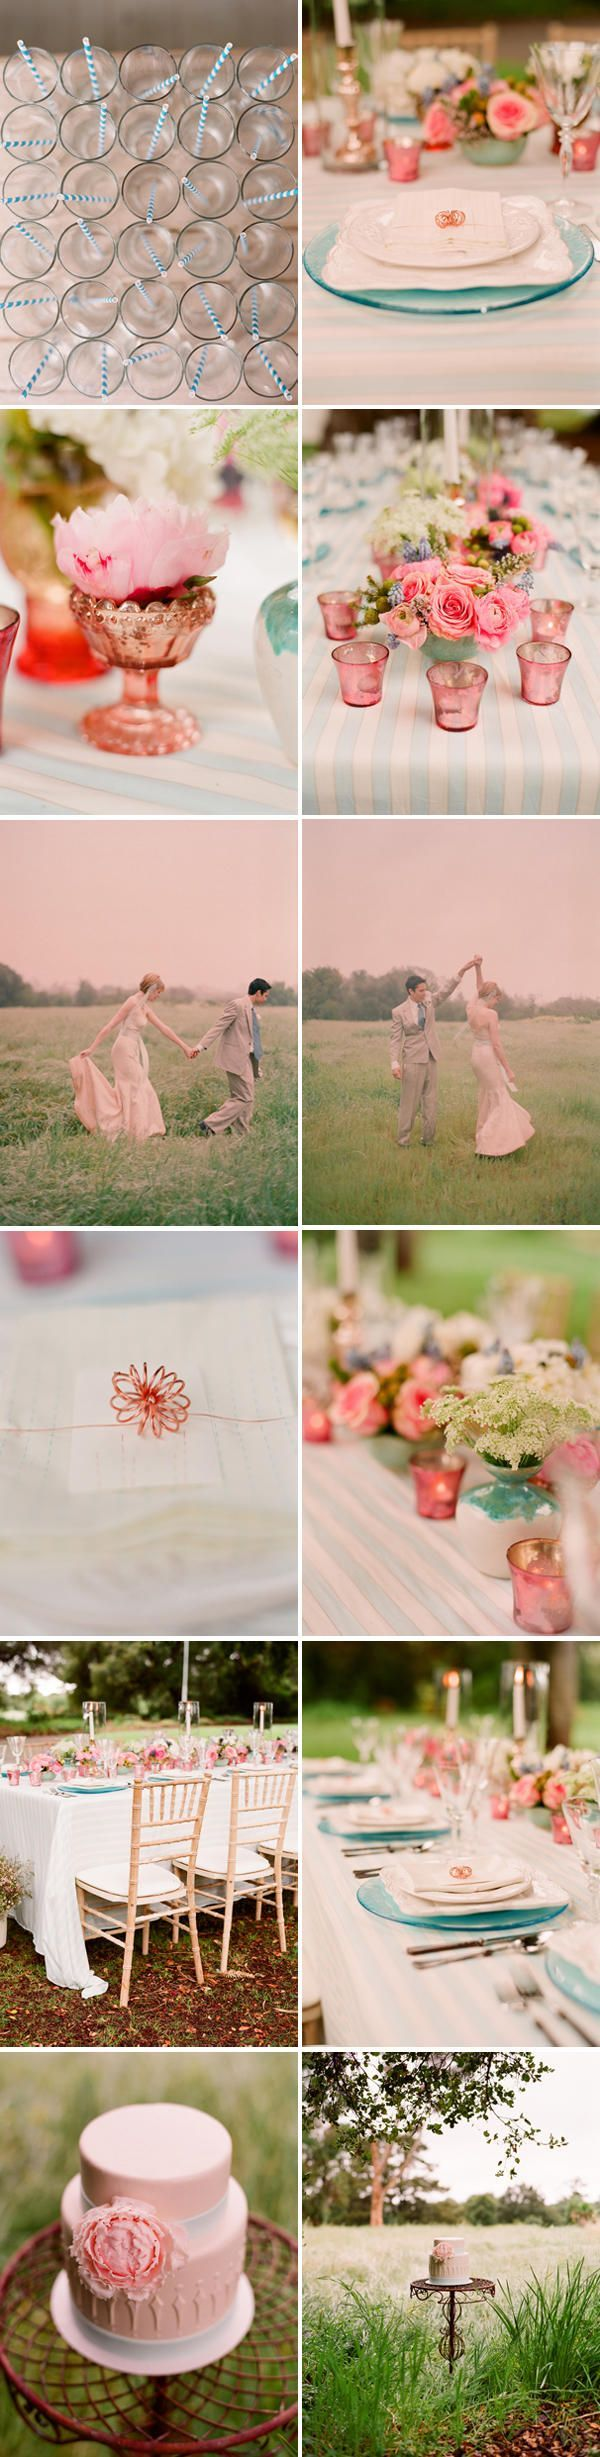 Playful Wedding Ideas III